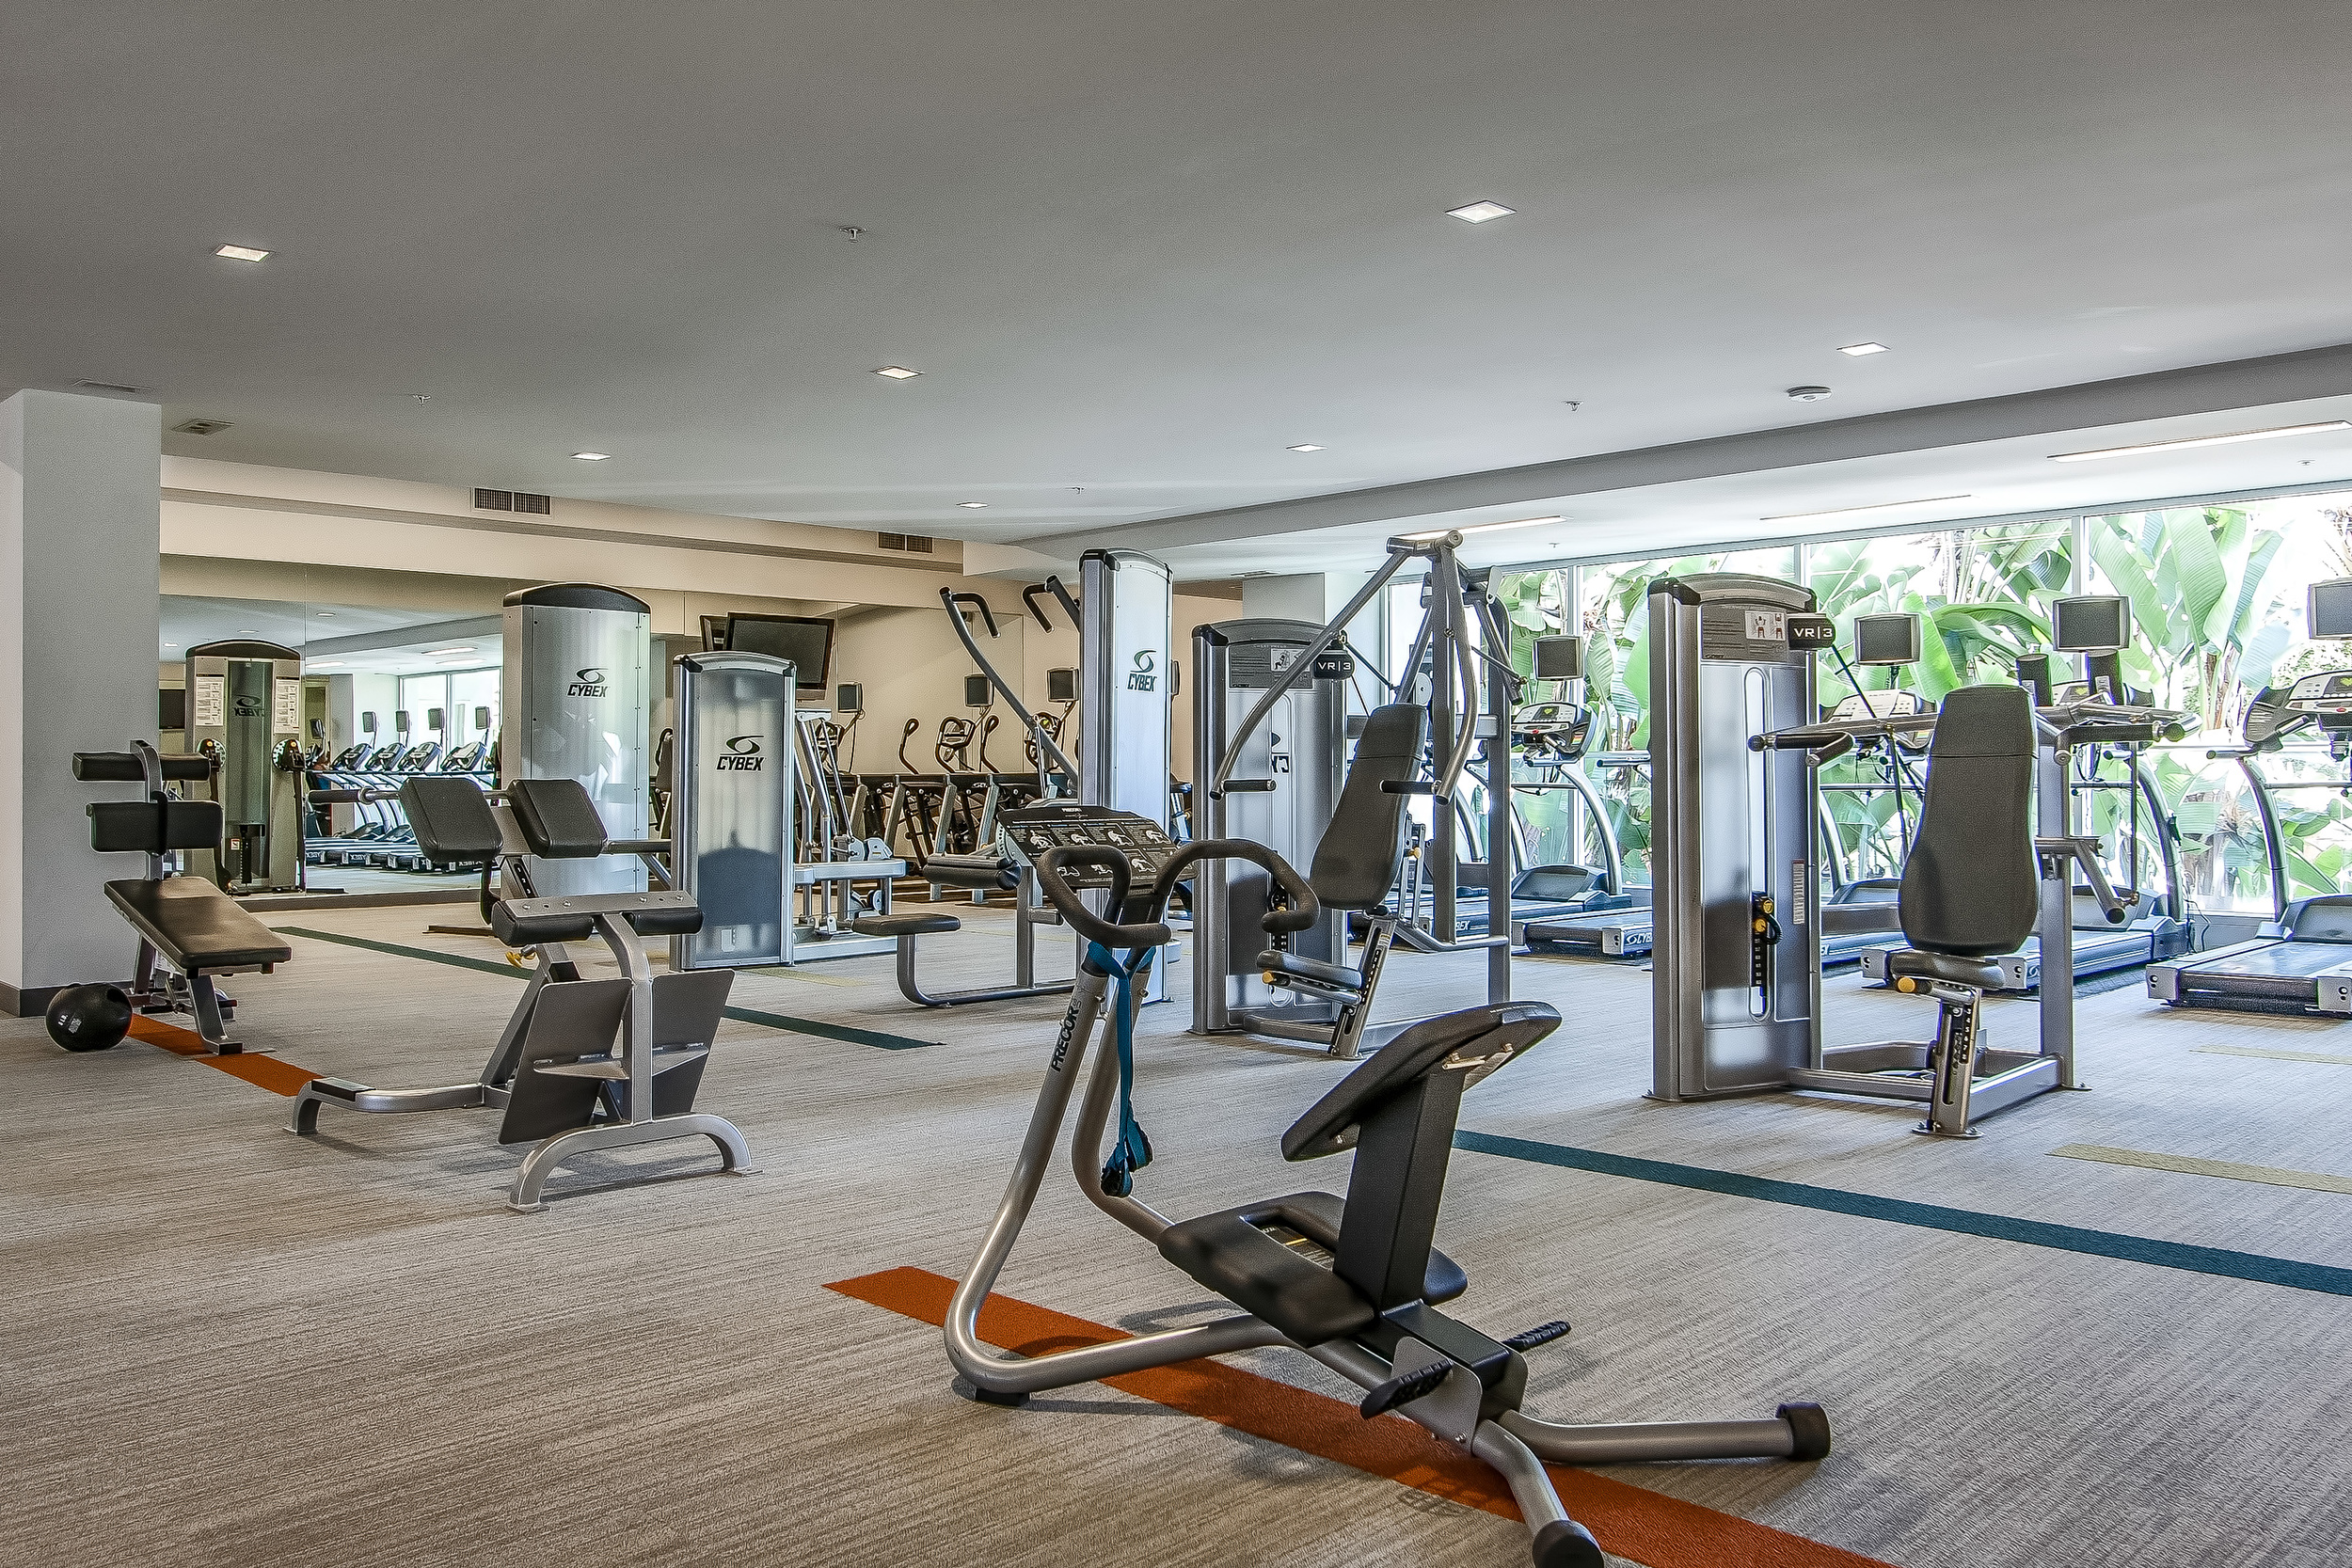 014-Exercise_Room-637023-large.jpg